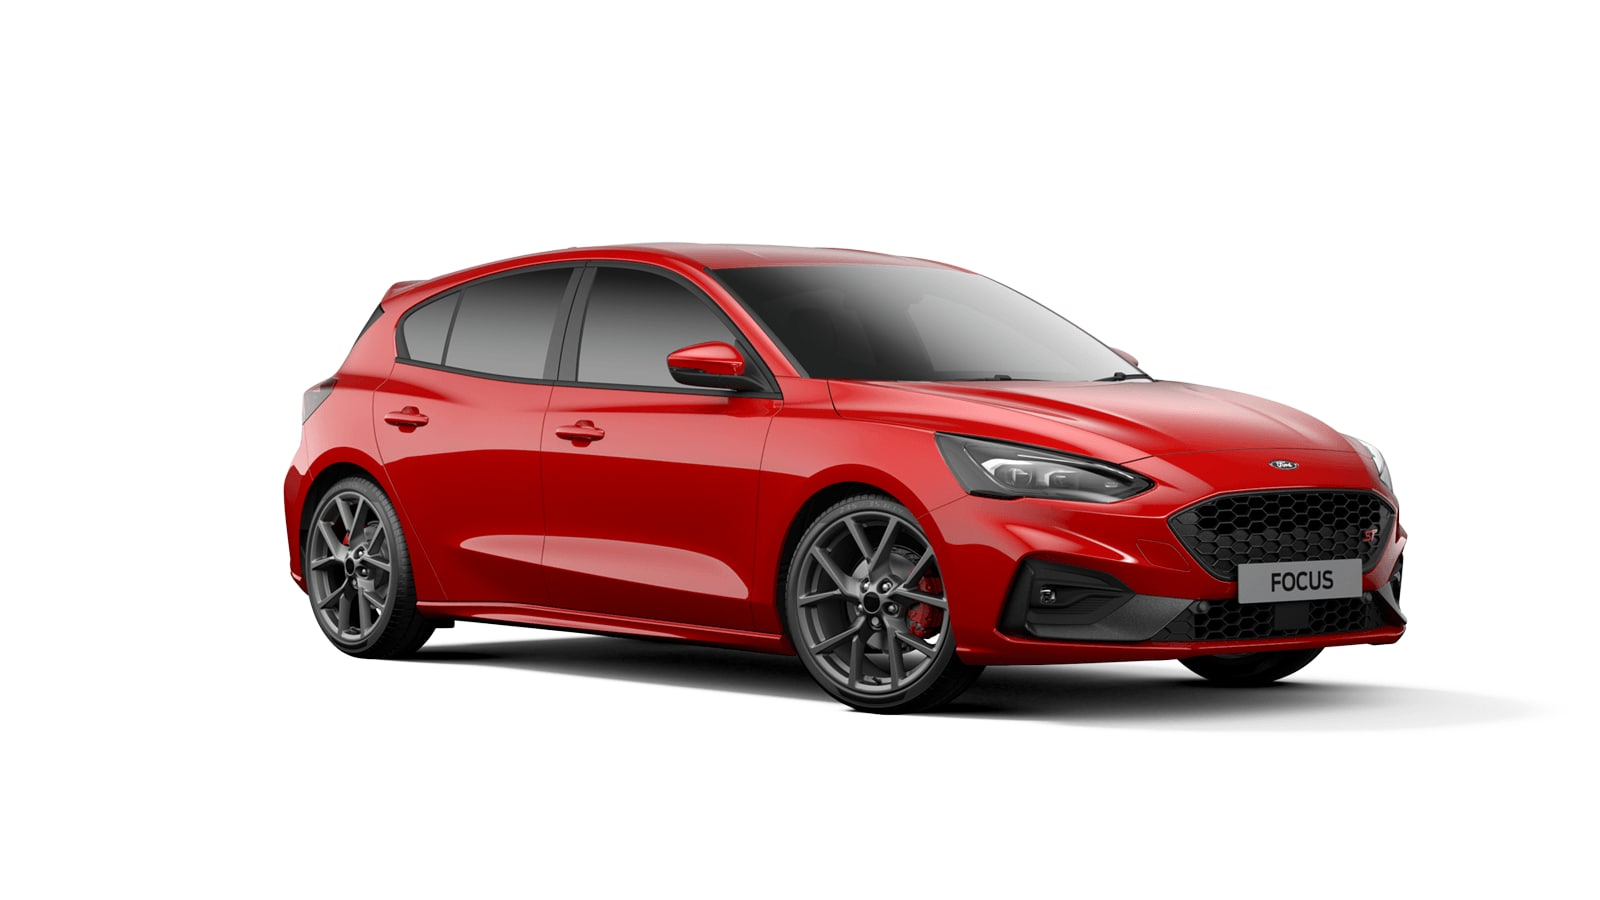 https://www.dealerinternet.co.uk/images/FOCUS%20C346/2019.75/5%20Door/ST/RACE-RED.png